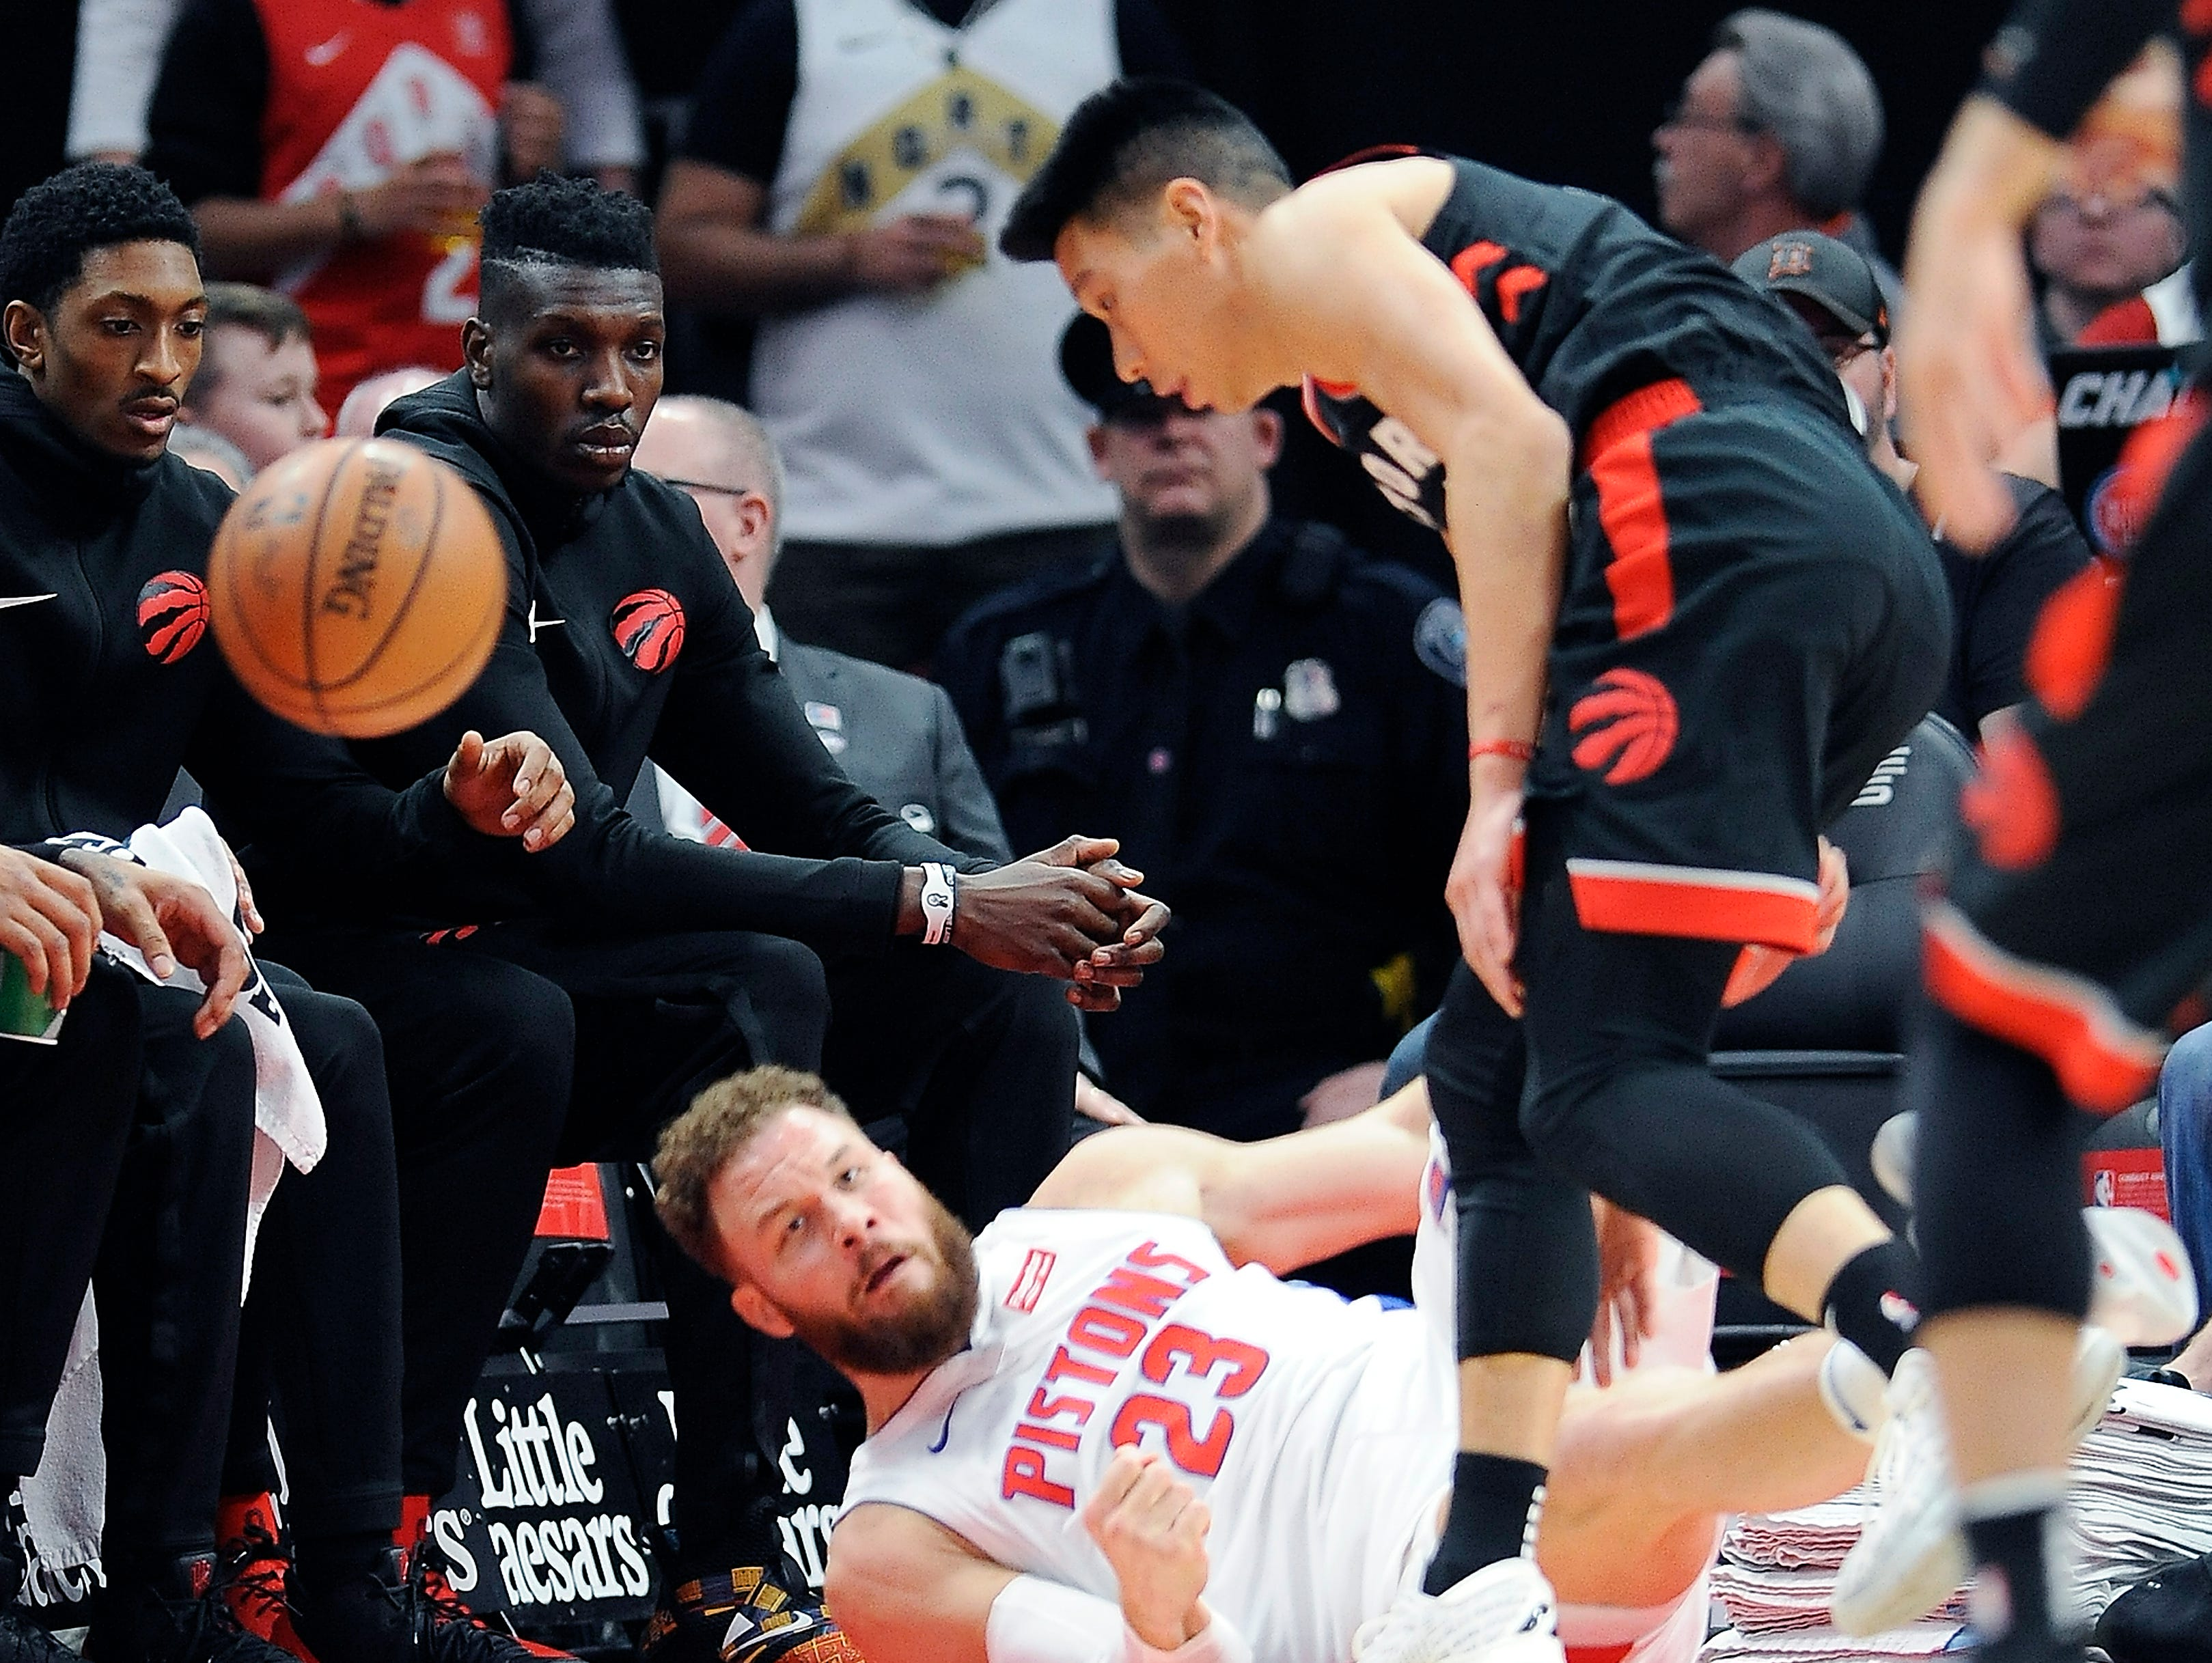 Pistons' Blake Griffin and Raptors' Jeremy Lin collide going for a loose ball in the first quarter.